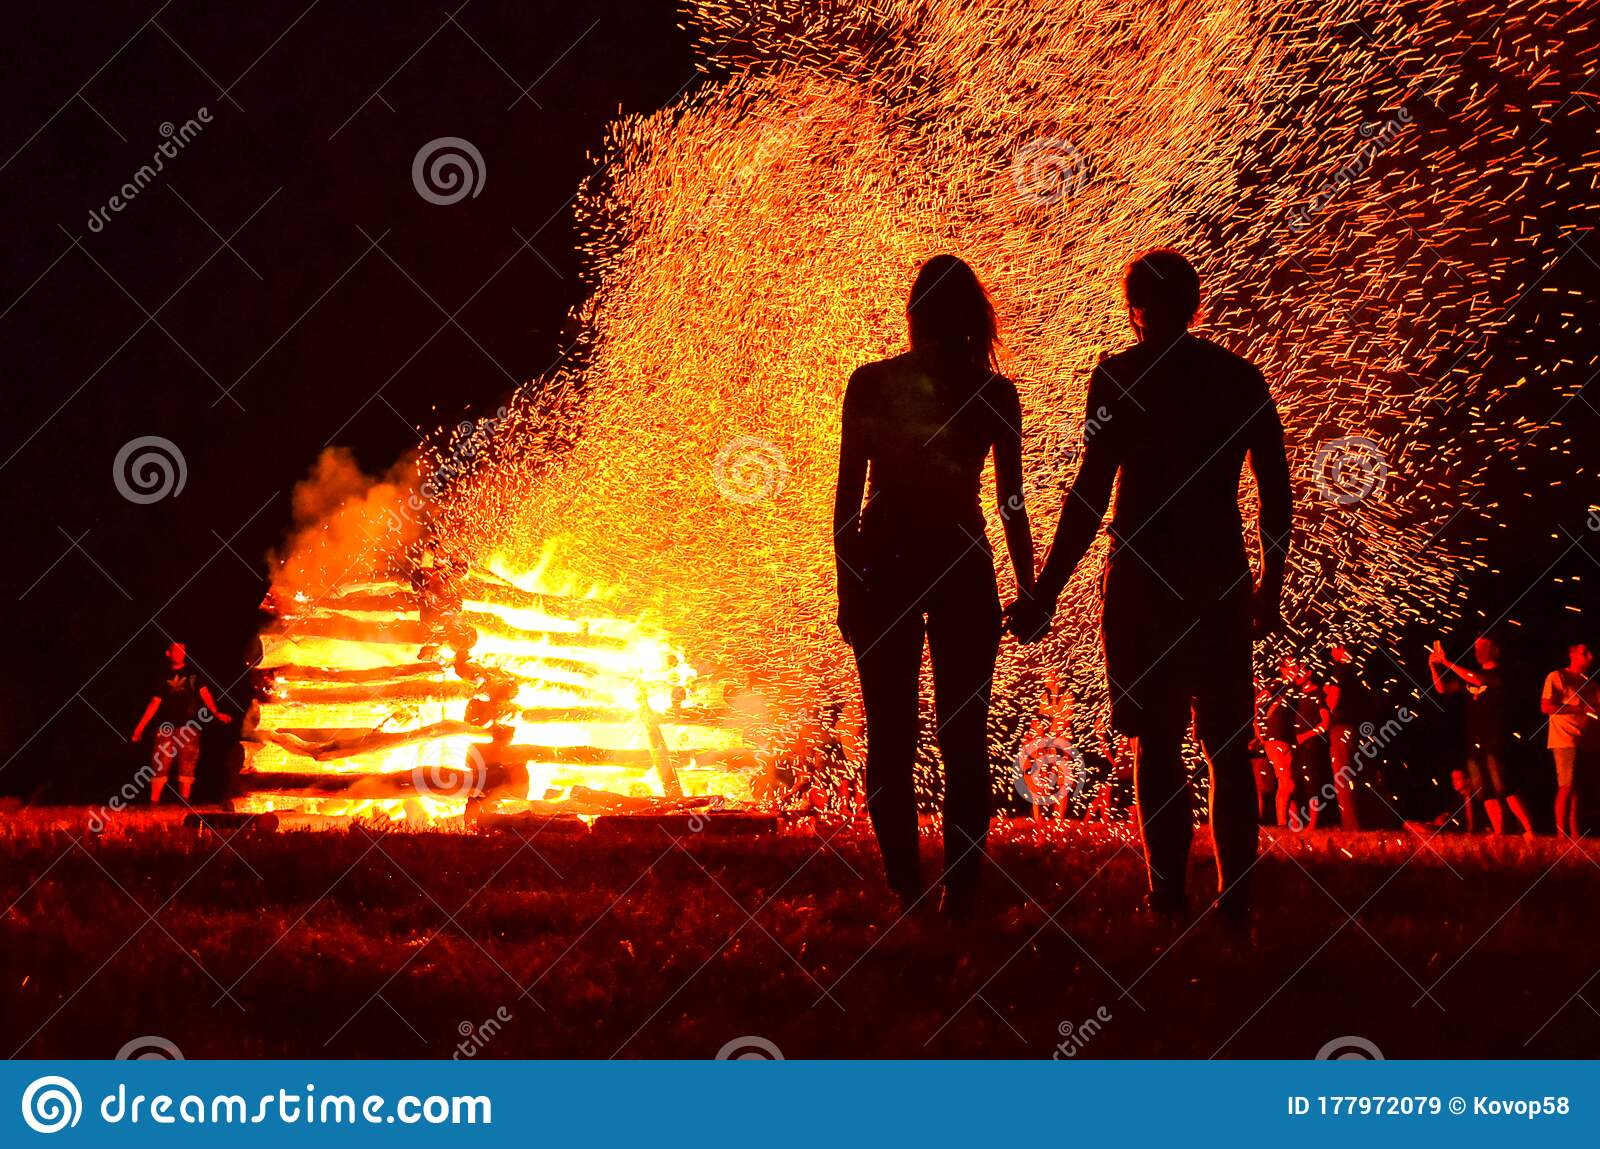 Silhouette Of Loving Couple In Fire Background Original Wallpaper Valentine Or Wedding Theme Stock Image Image Of Outdoor Relax 177972079